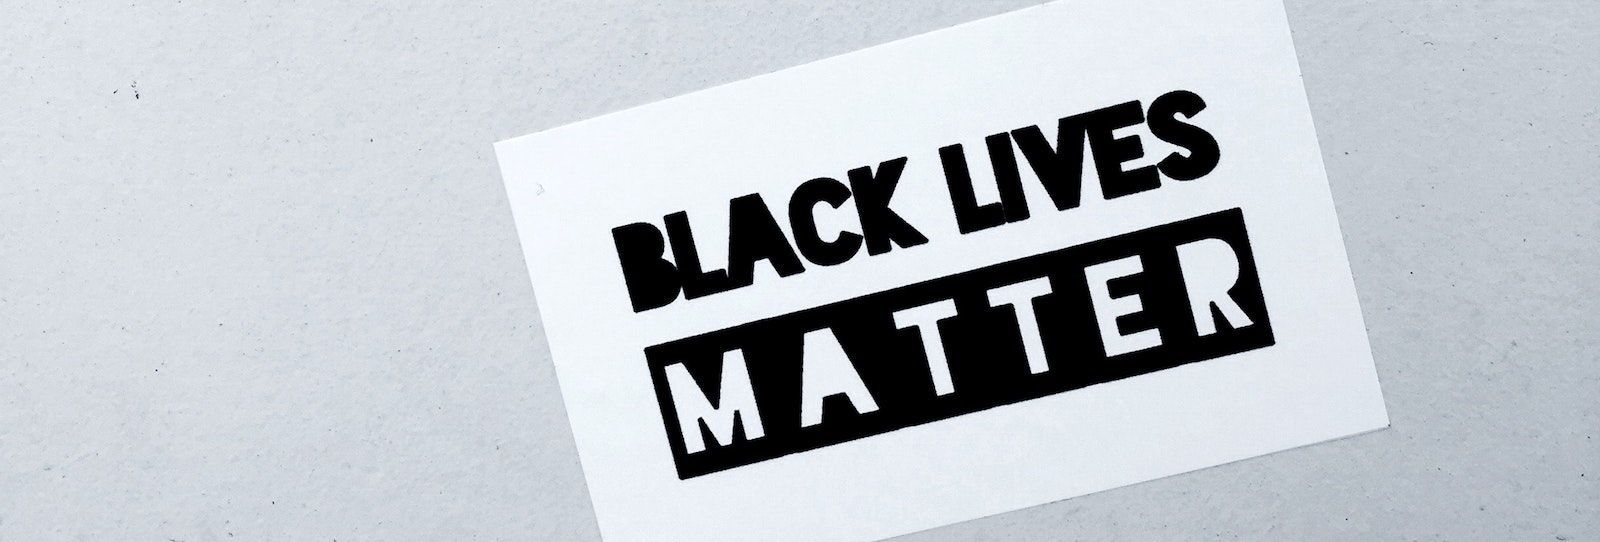 Chris Haydon's cultural resources to help understand the Black Lives Matter campaign